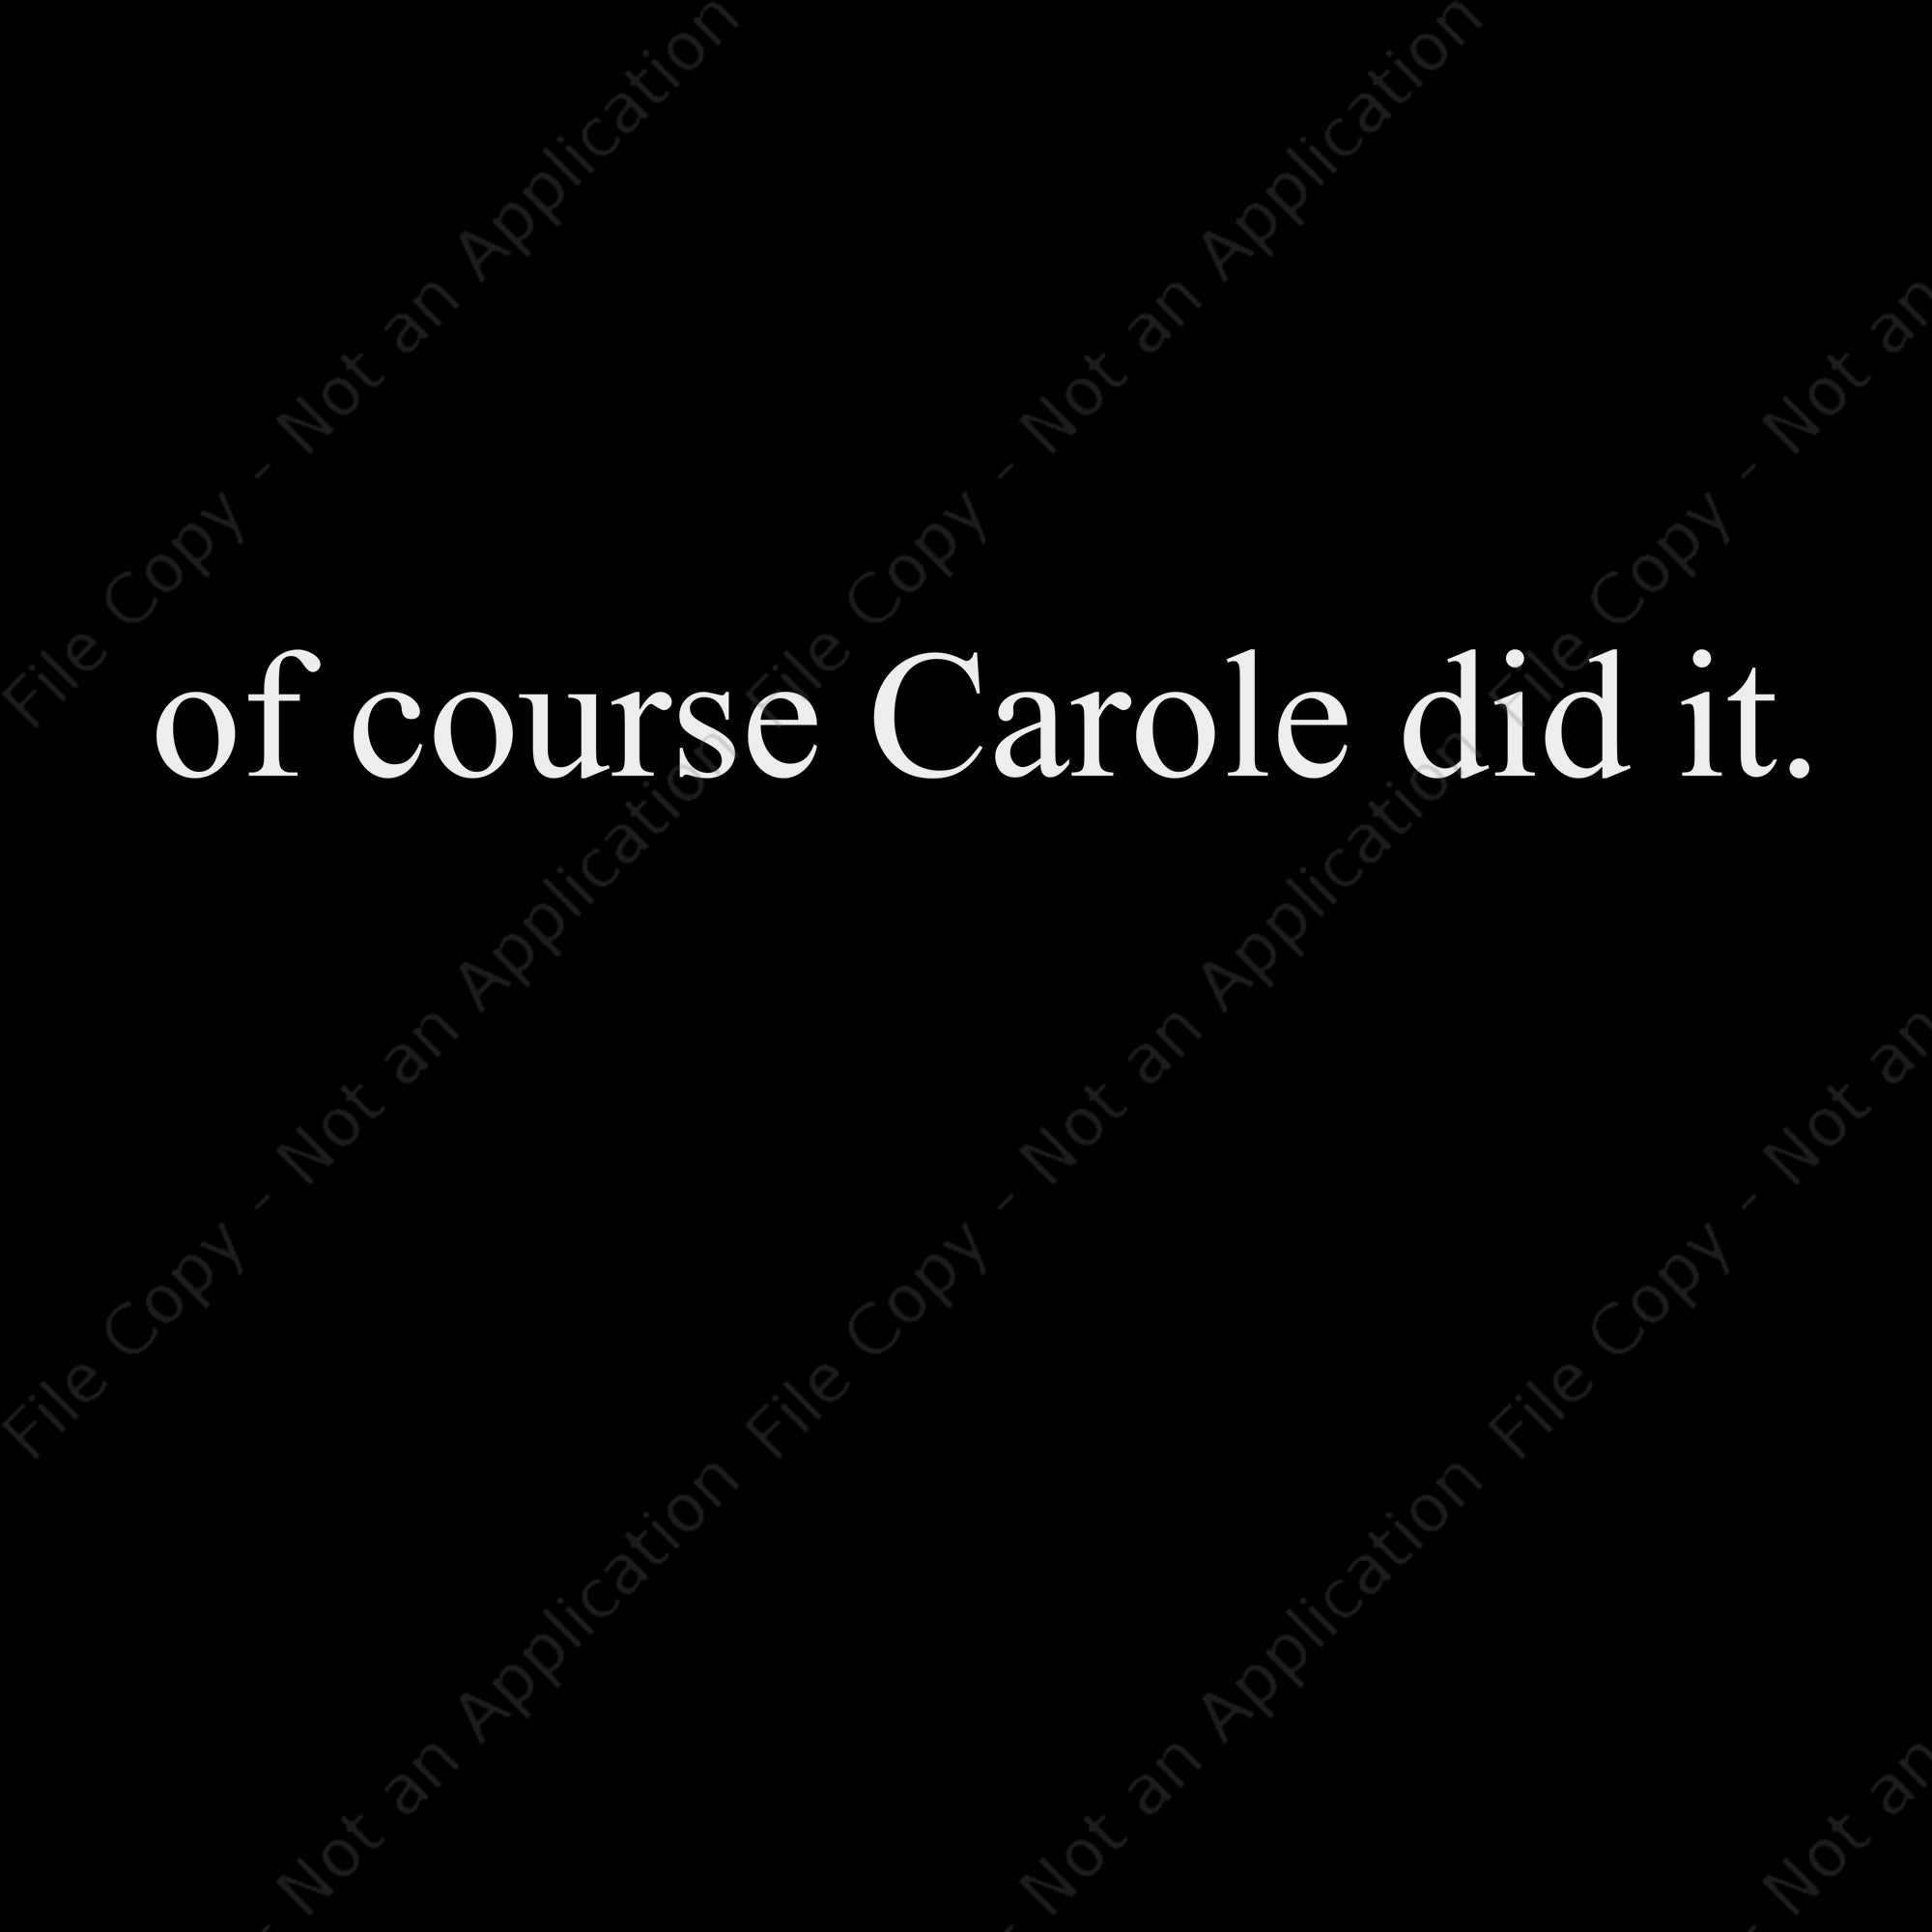 Of course carole dit it svg, of course carole dit it, of course carole dit it png, eps, dxf, svg file